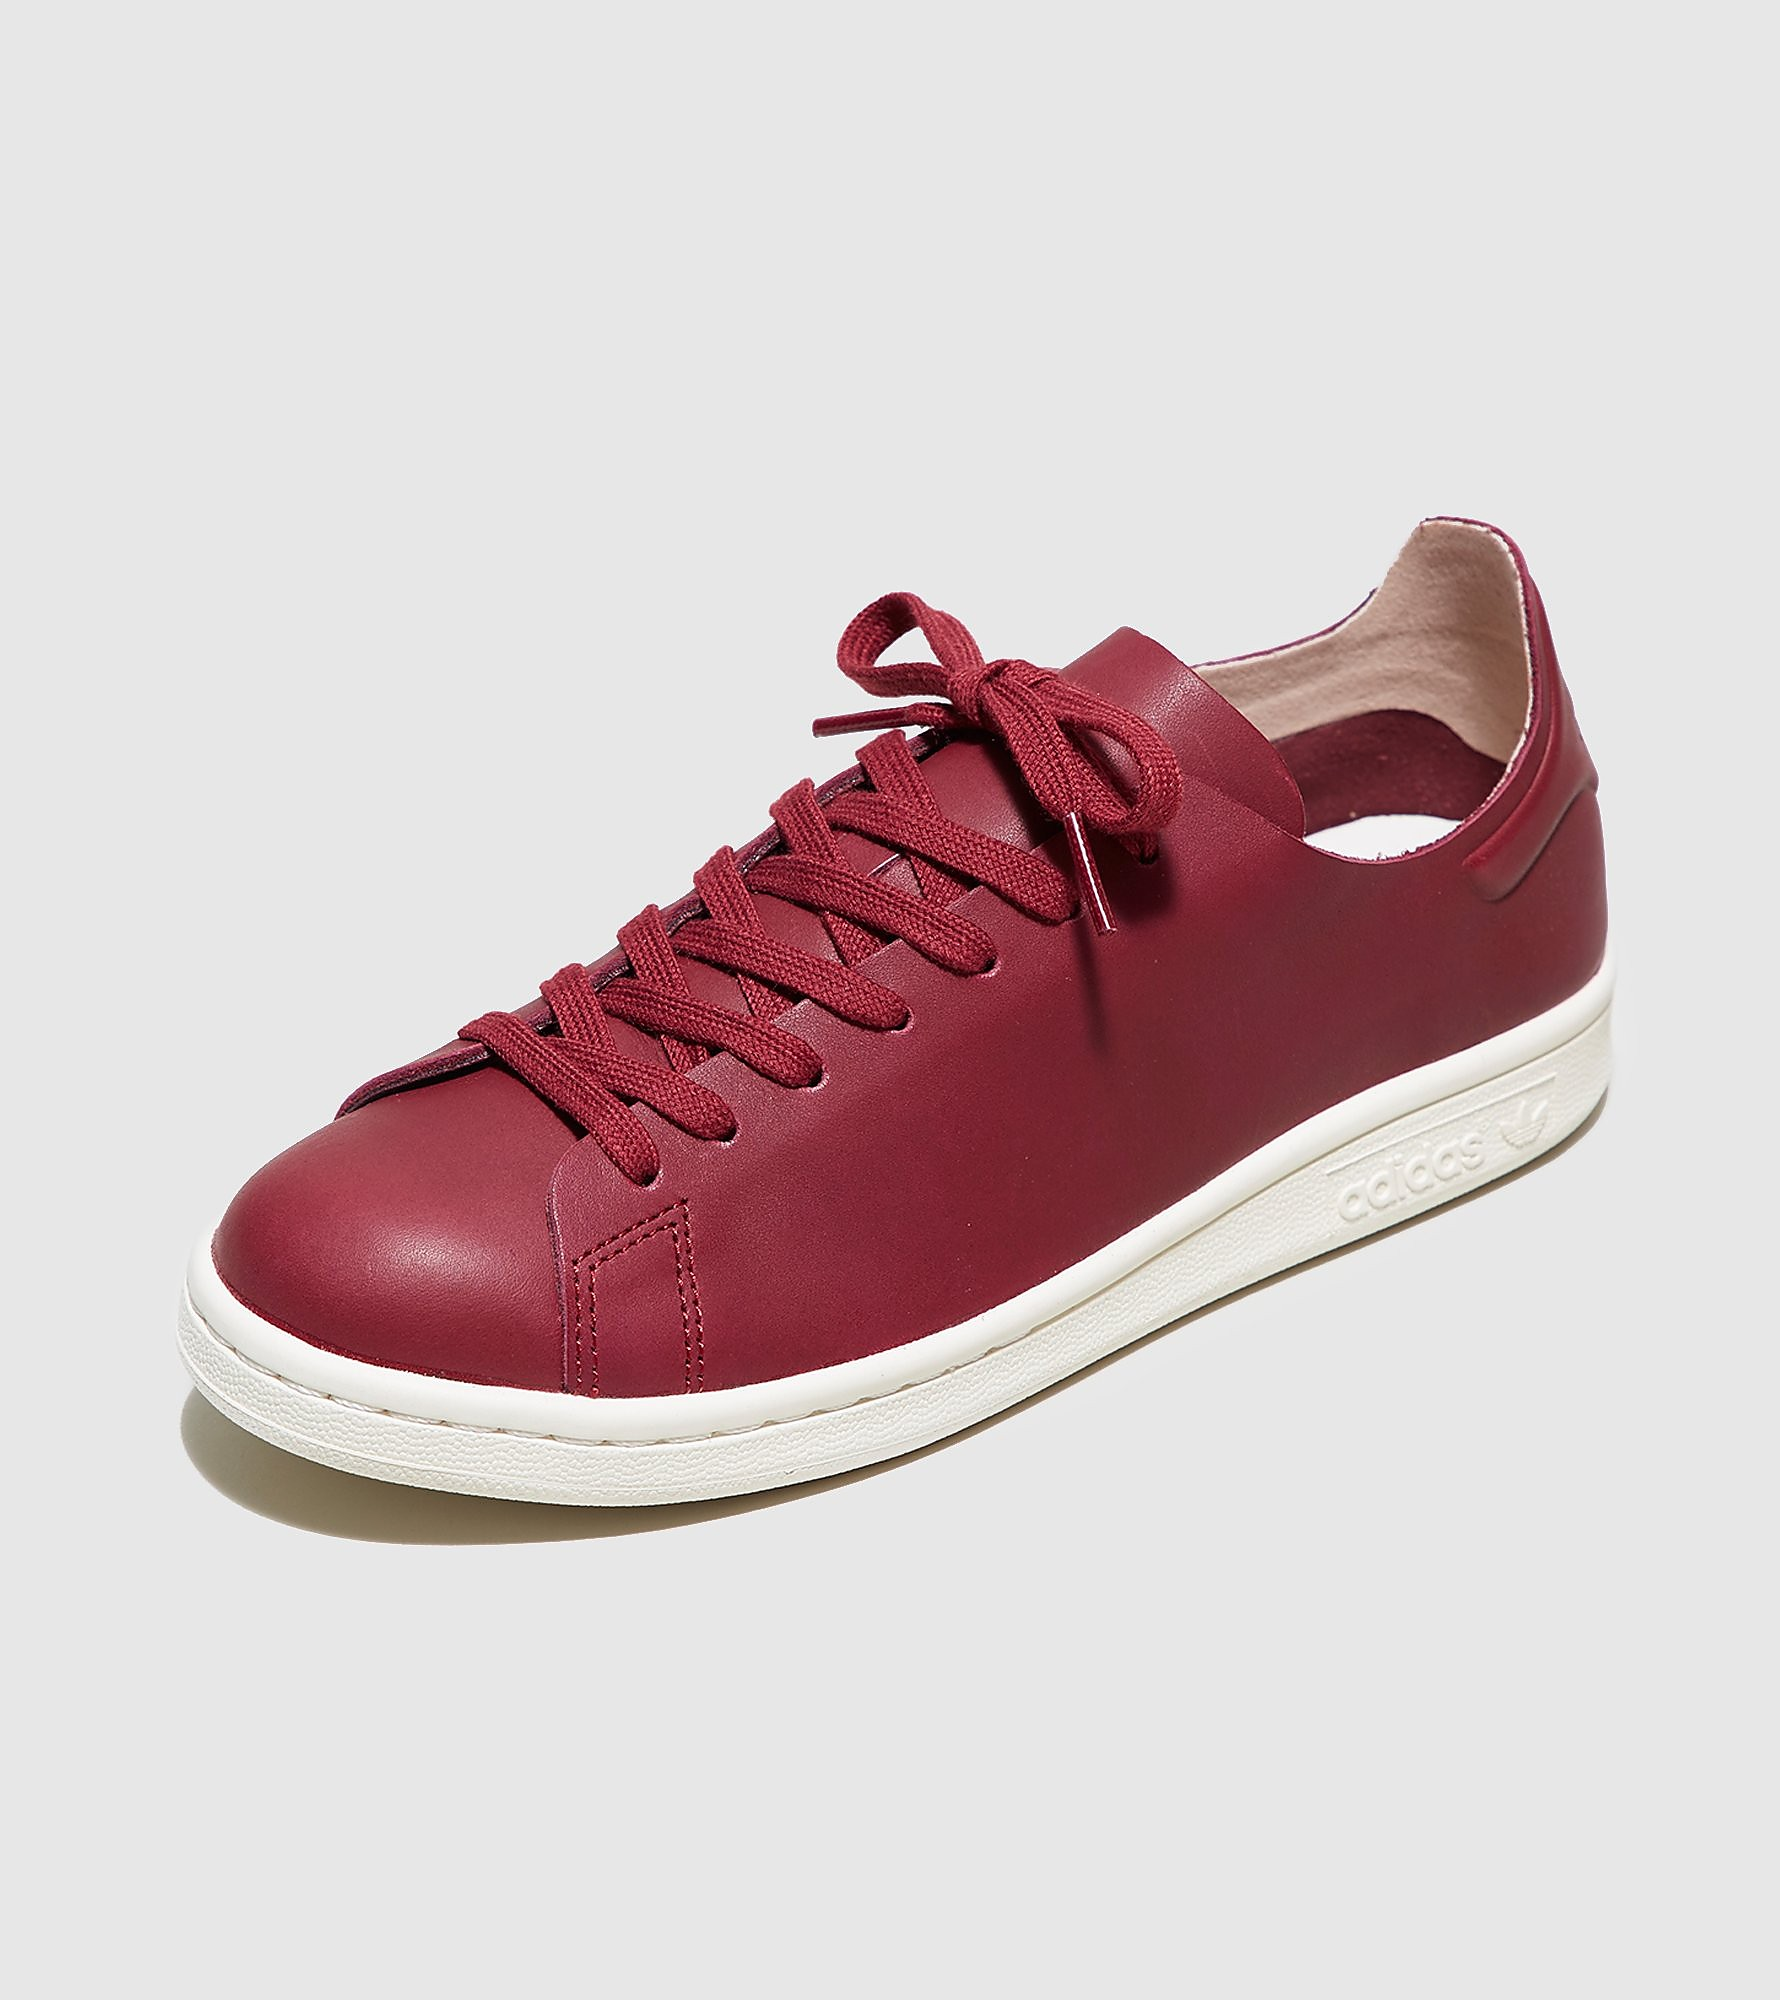 adidas Originals Stan Smith Nuude Women's